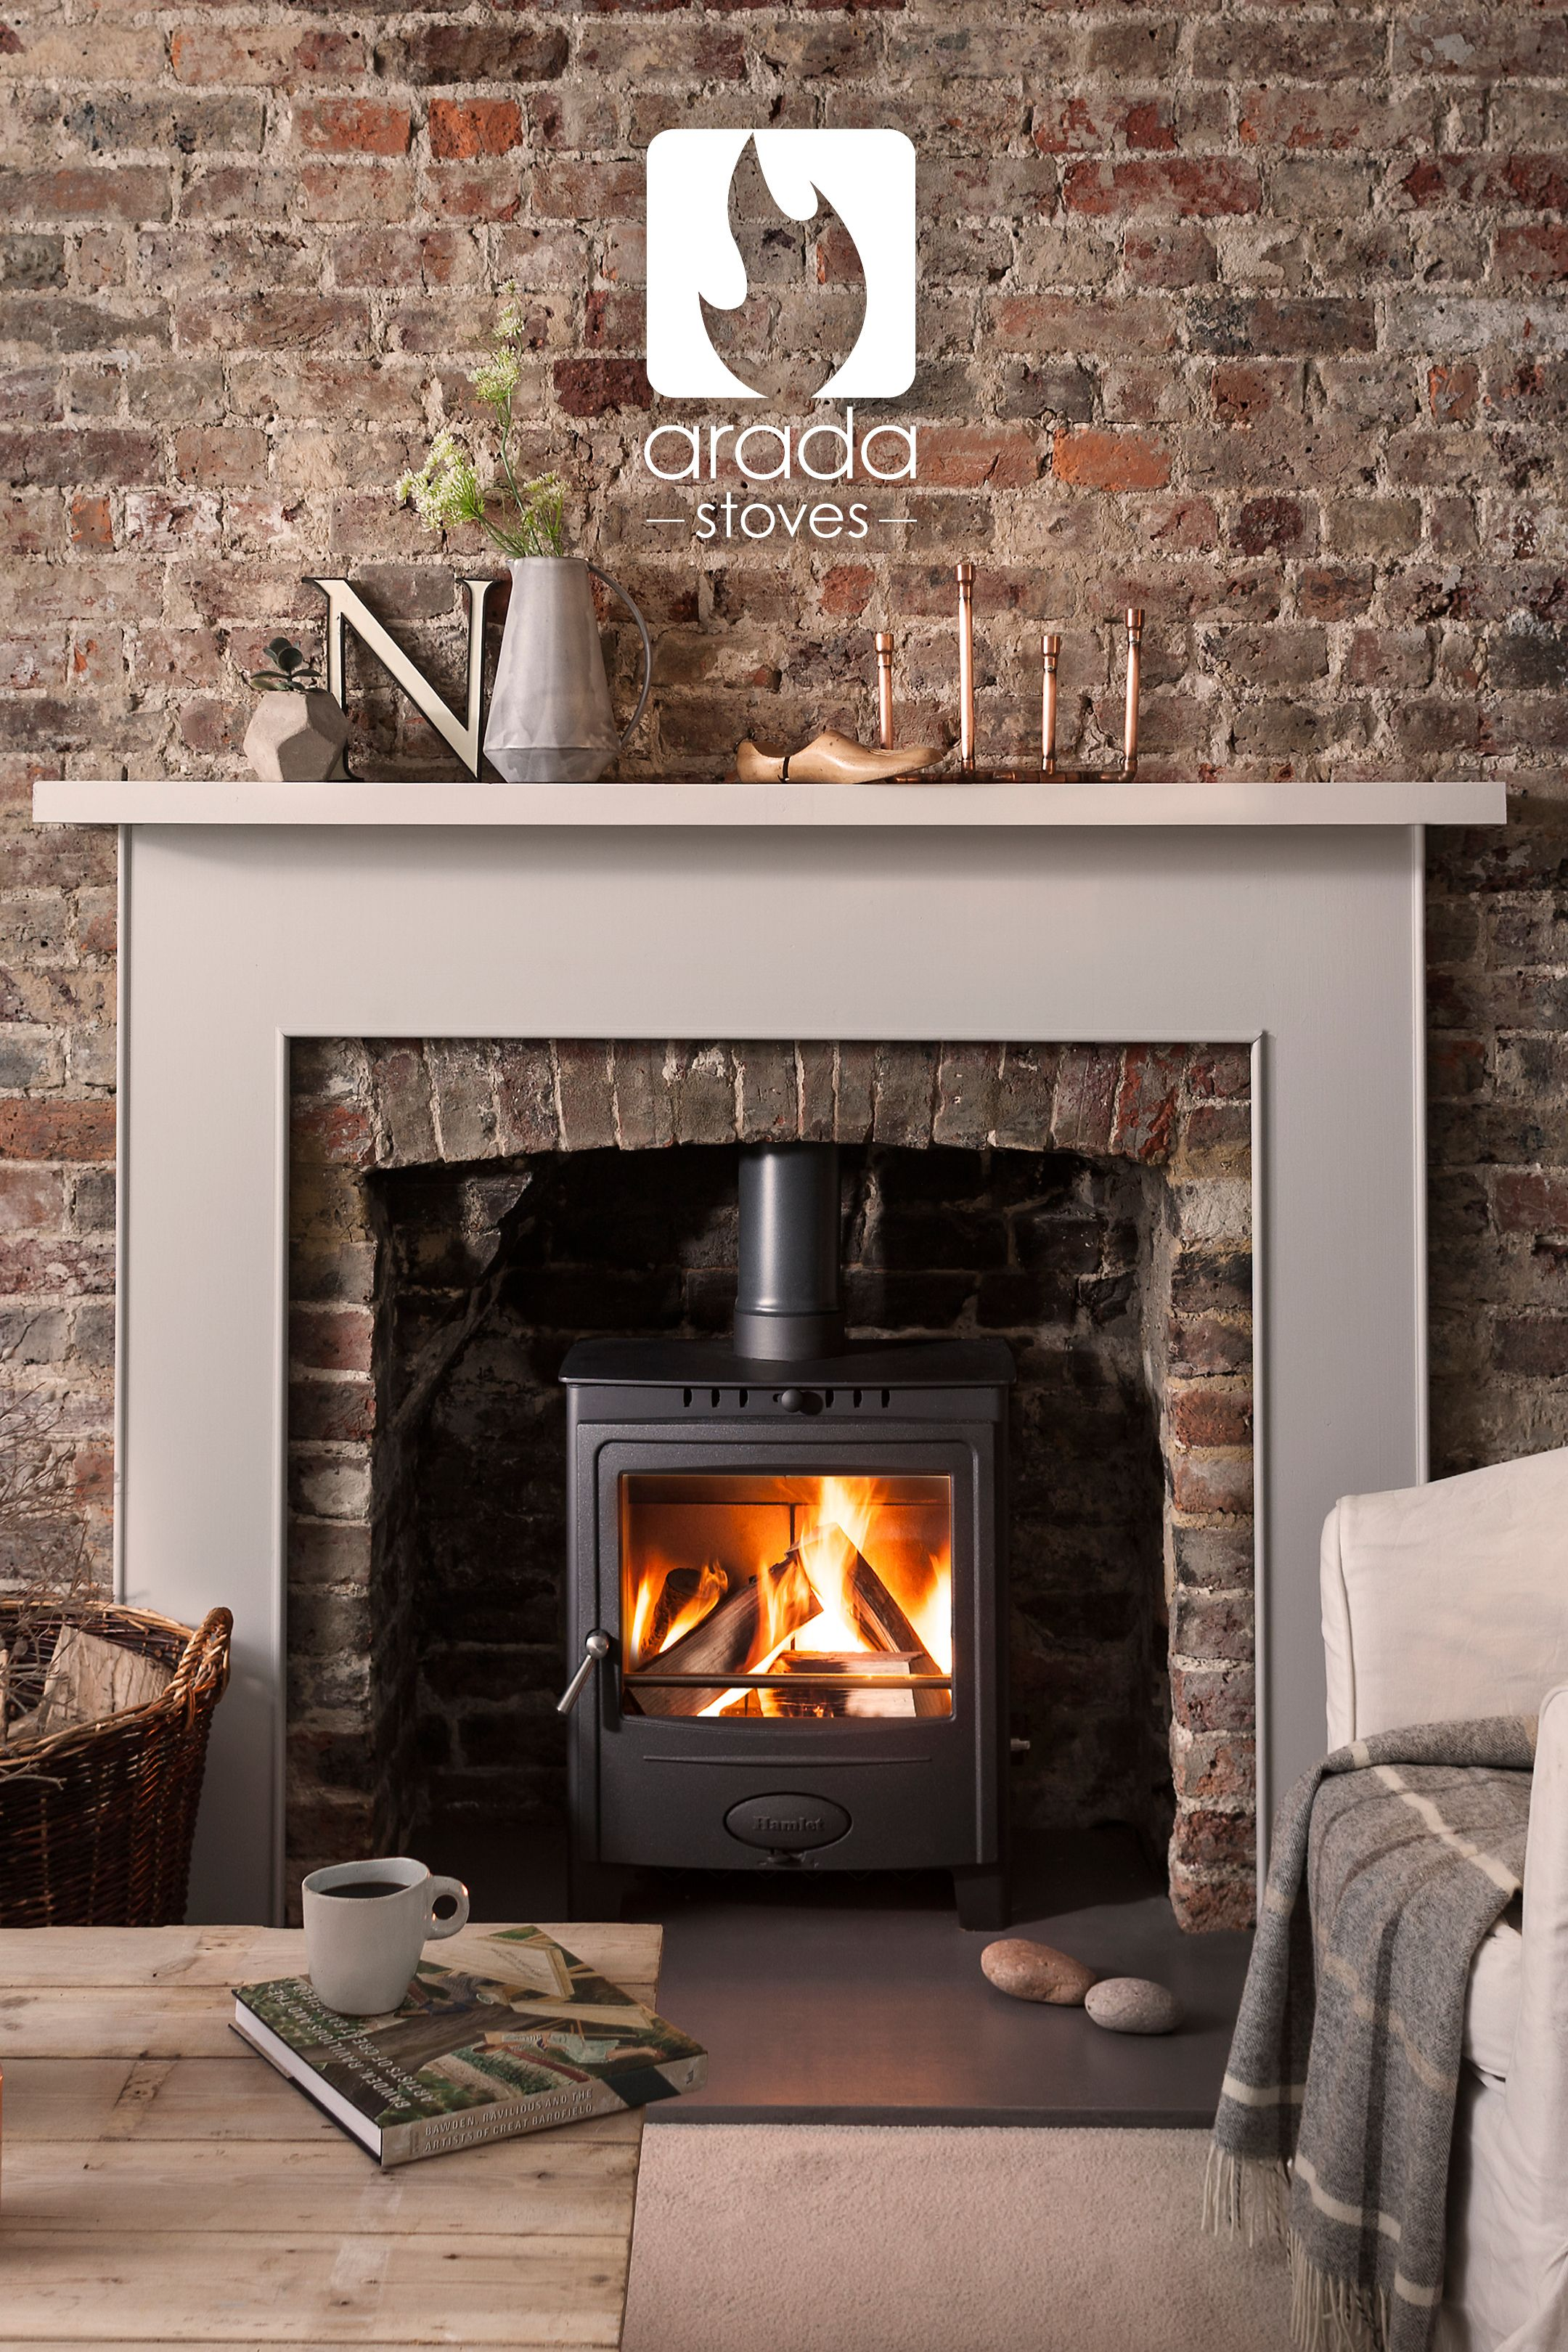 Create a warm, welcoming home with one of our wood burning ...